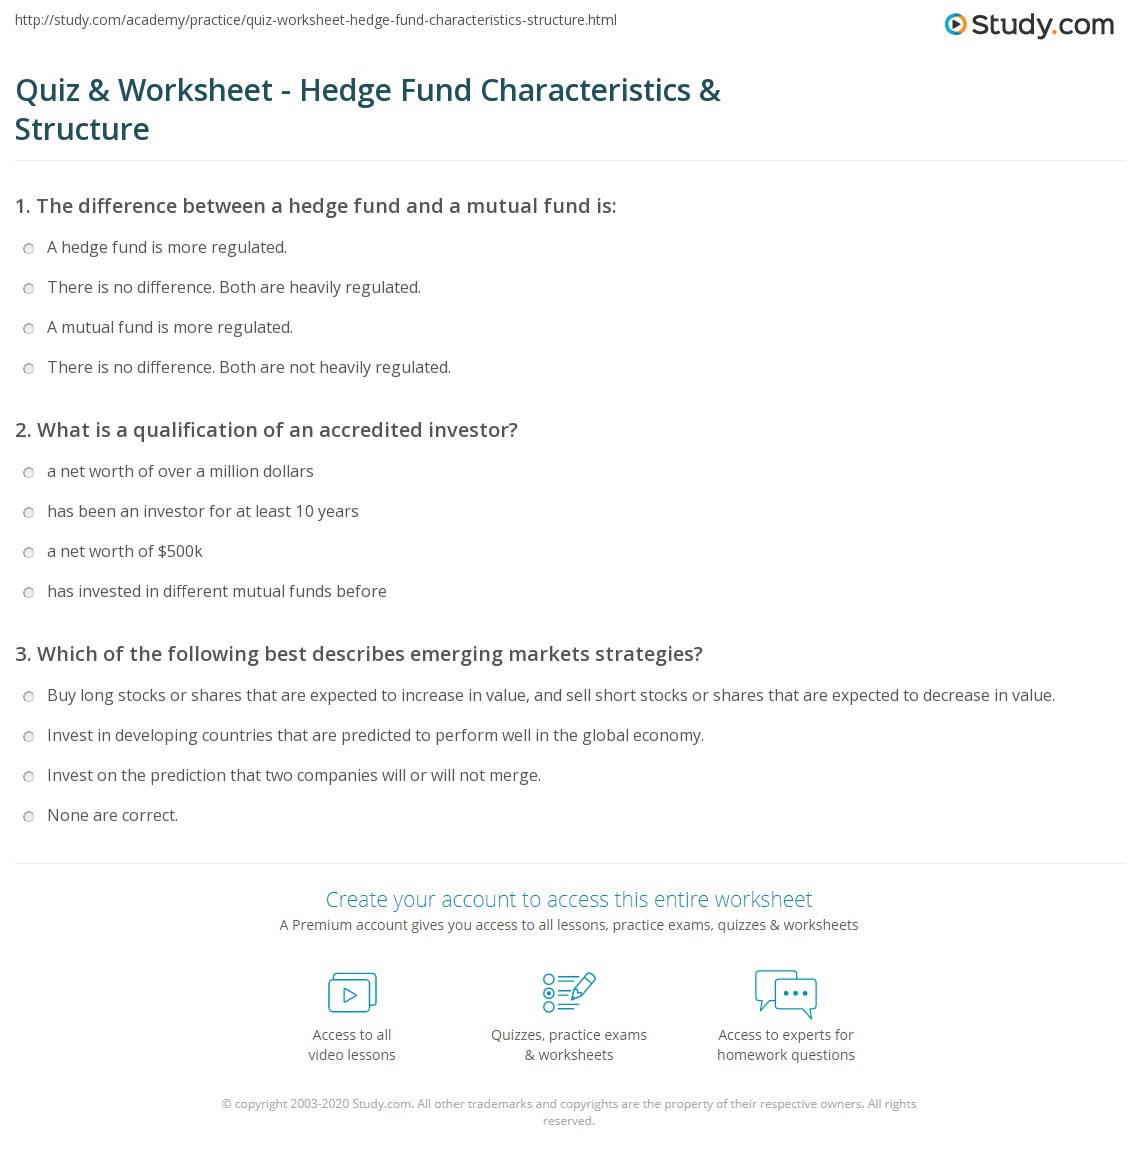 quiz & worksheet - hedge fund characteristics & structure | study